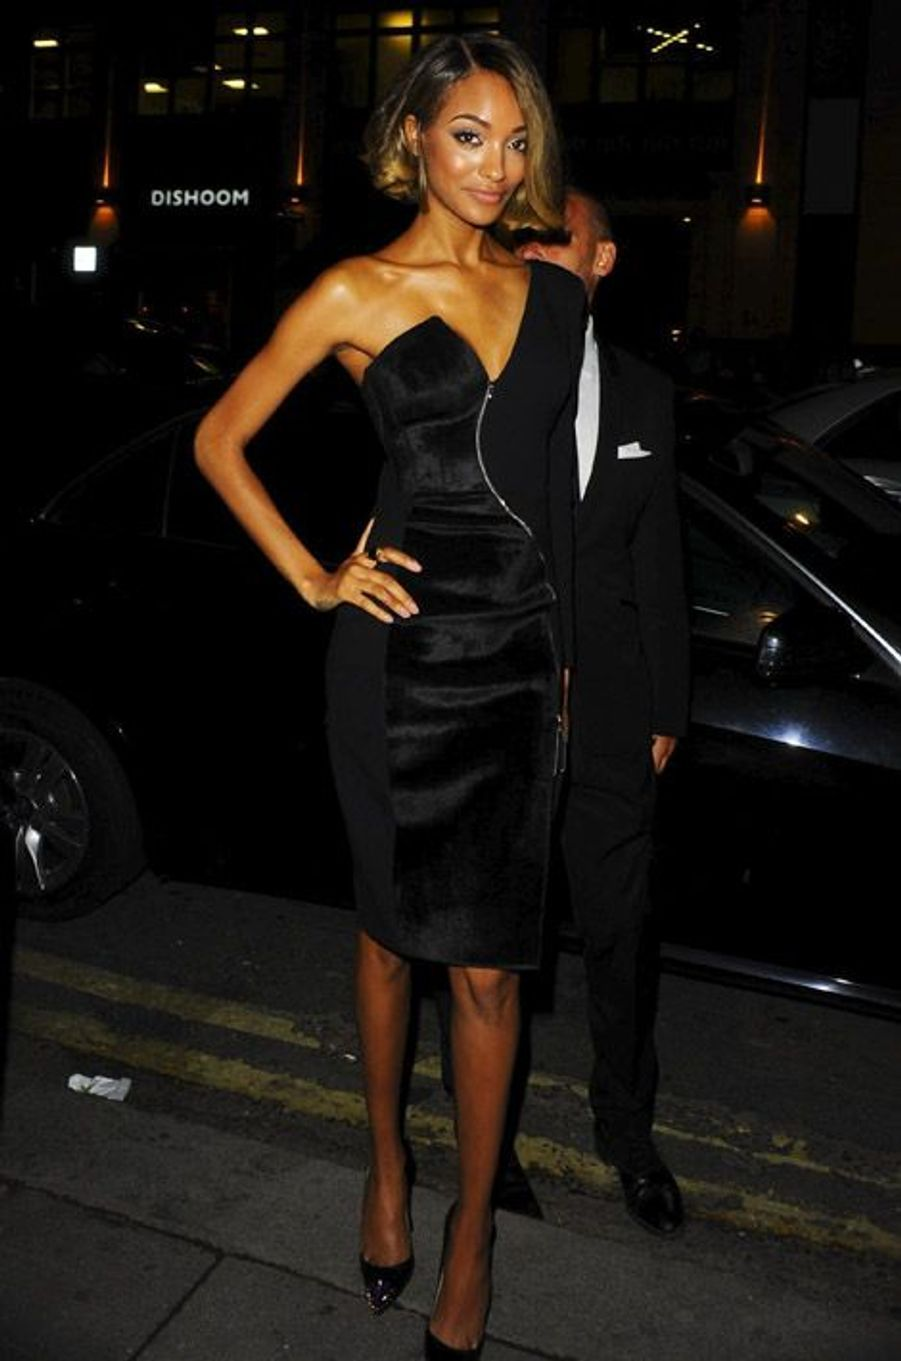 Le top Jourdan Dunn lors d'une soirée en marge de la Fashion Week de Londres, le 12 septembre 2014